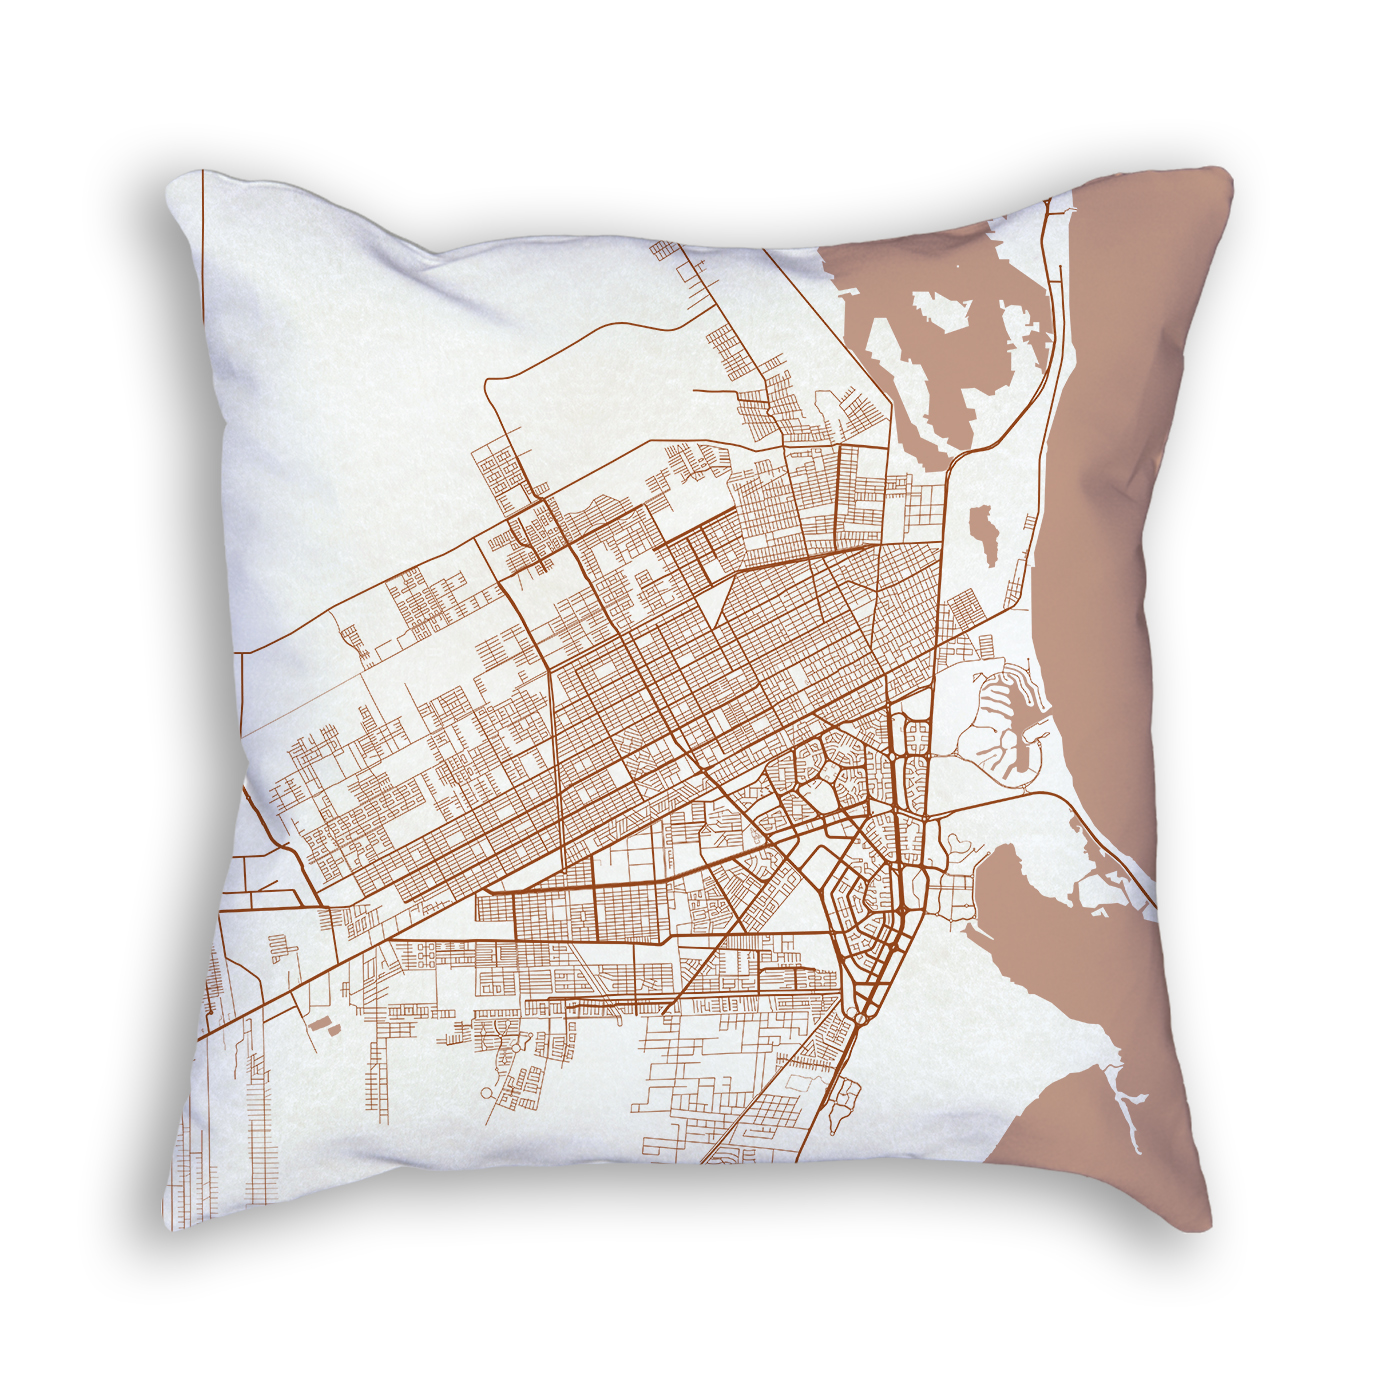 Cancun Mexico City Map Art Decorative Throw Pillow